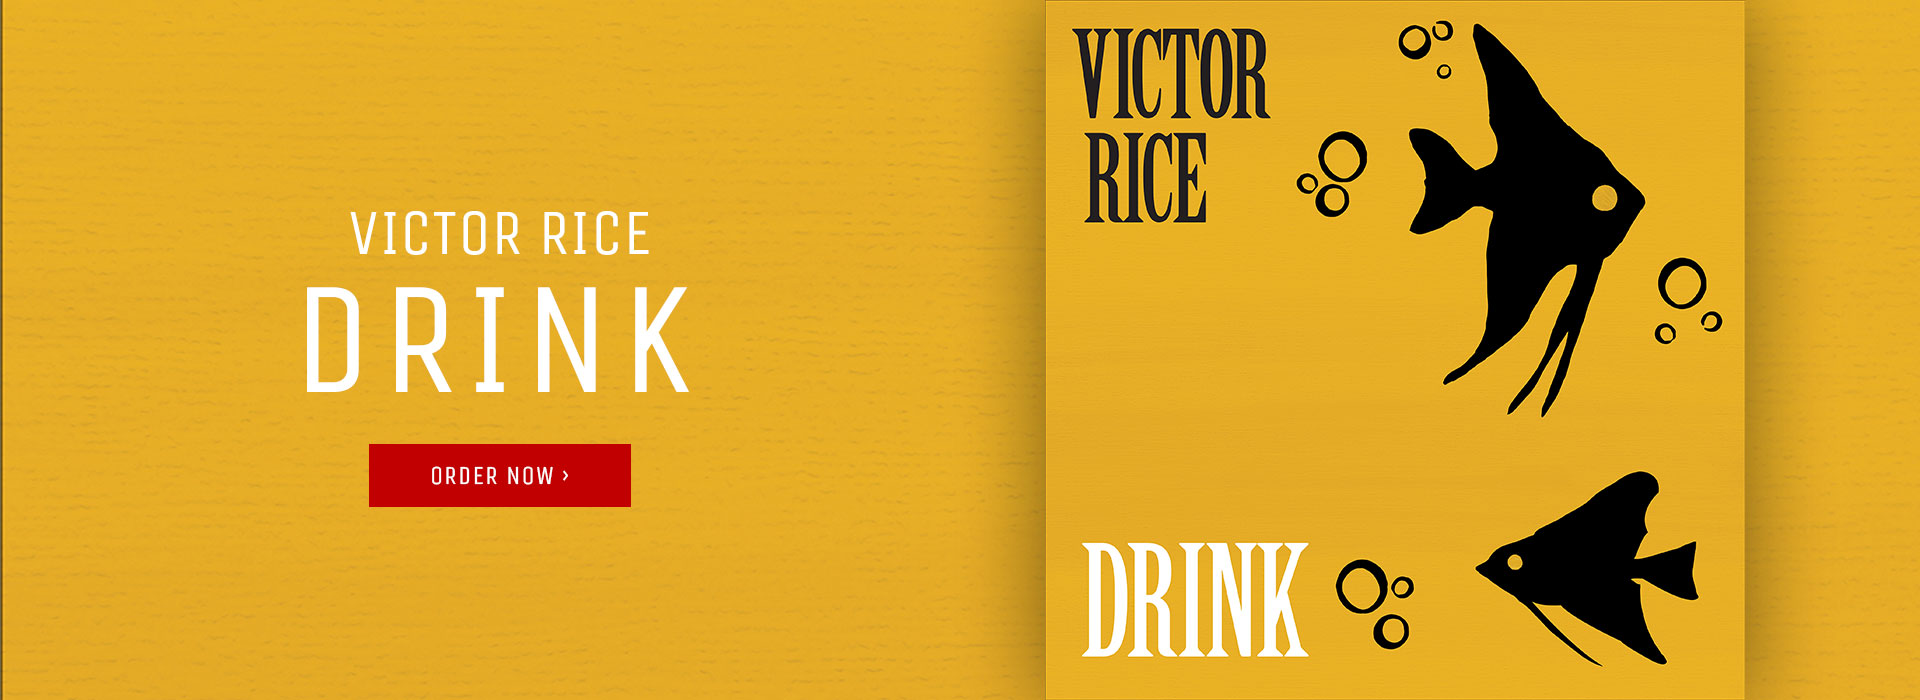 Victor Rice's Drink available now.